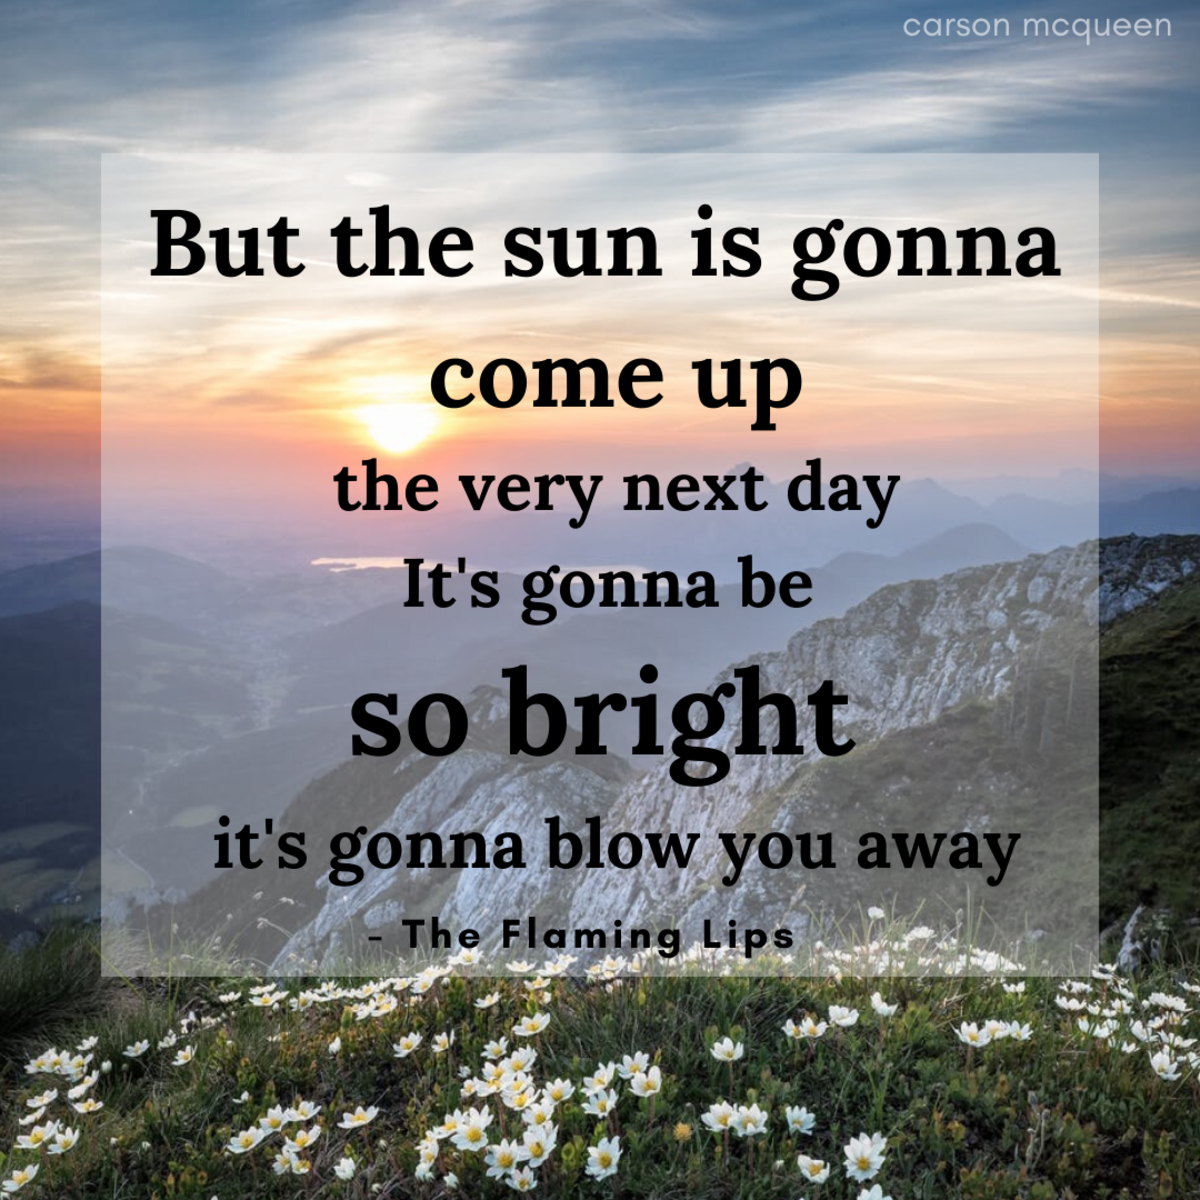 """""""But the sun is gonna come up the very next day. It's gonna be  so bright it's gonna blow you away."""" - The Flaming Lips"""